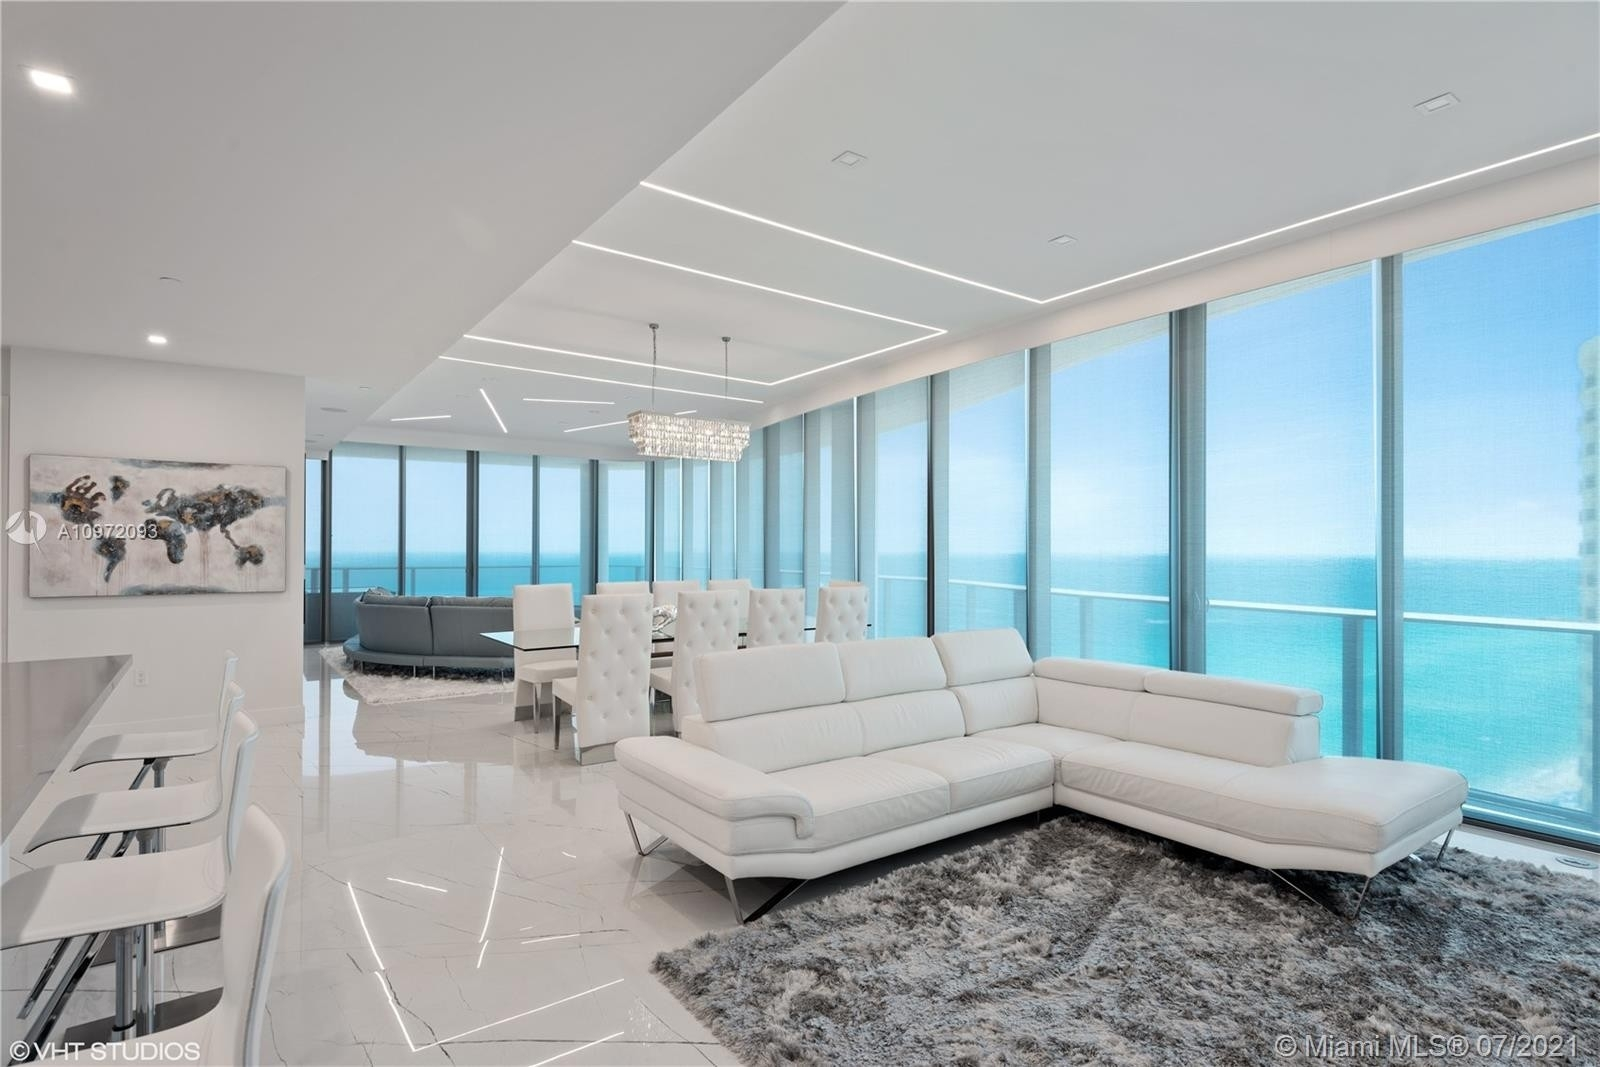 5. Condominiums for Sale at 17475 Collins Ave , 1501 Sunny Isles Beach, FL 33160